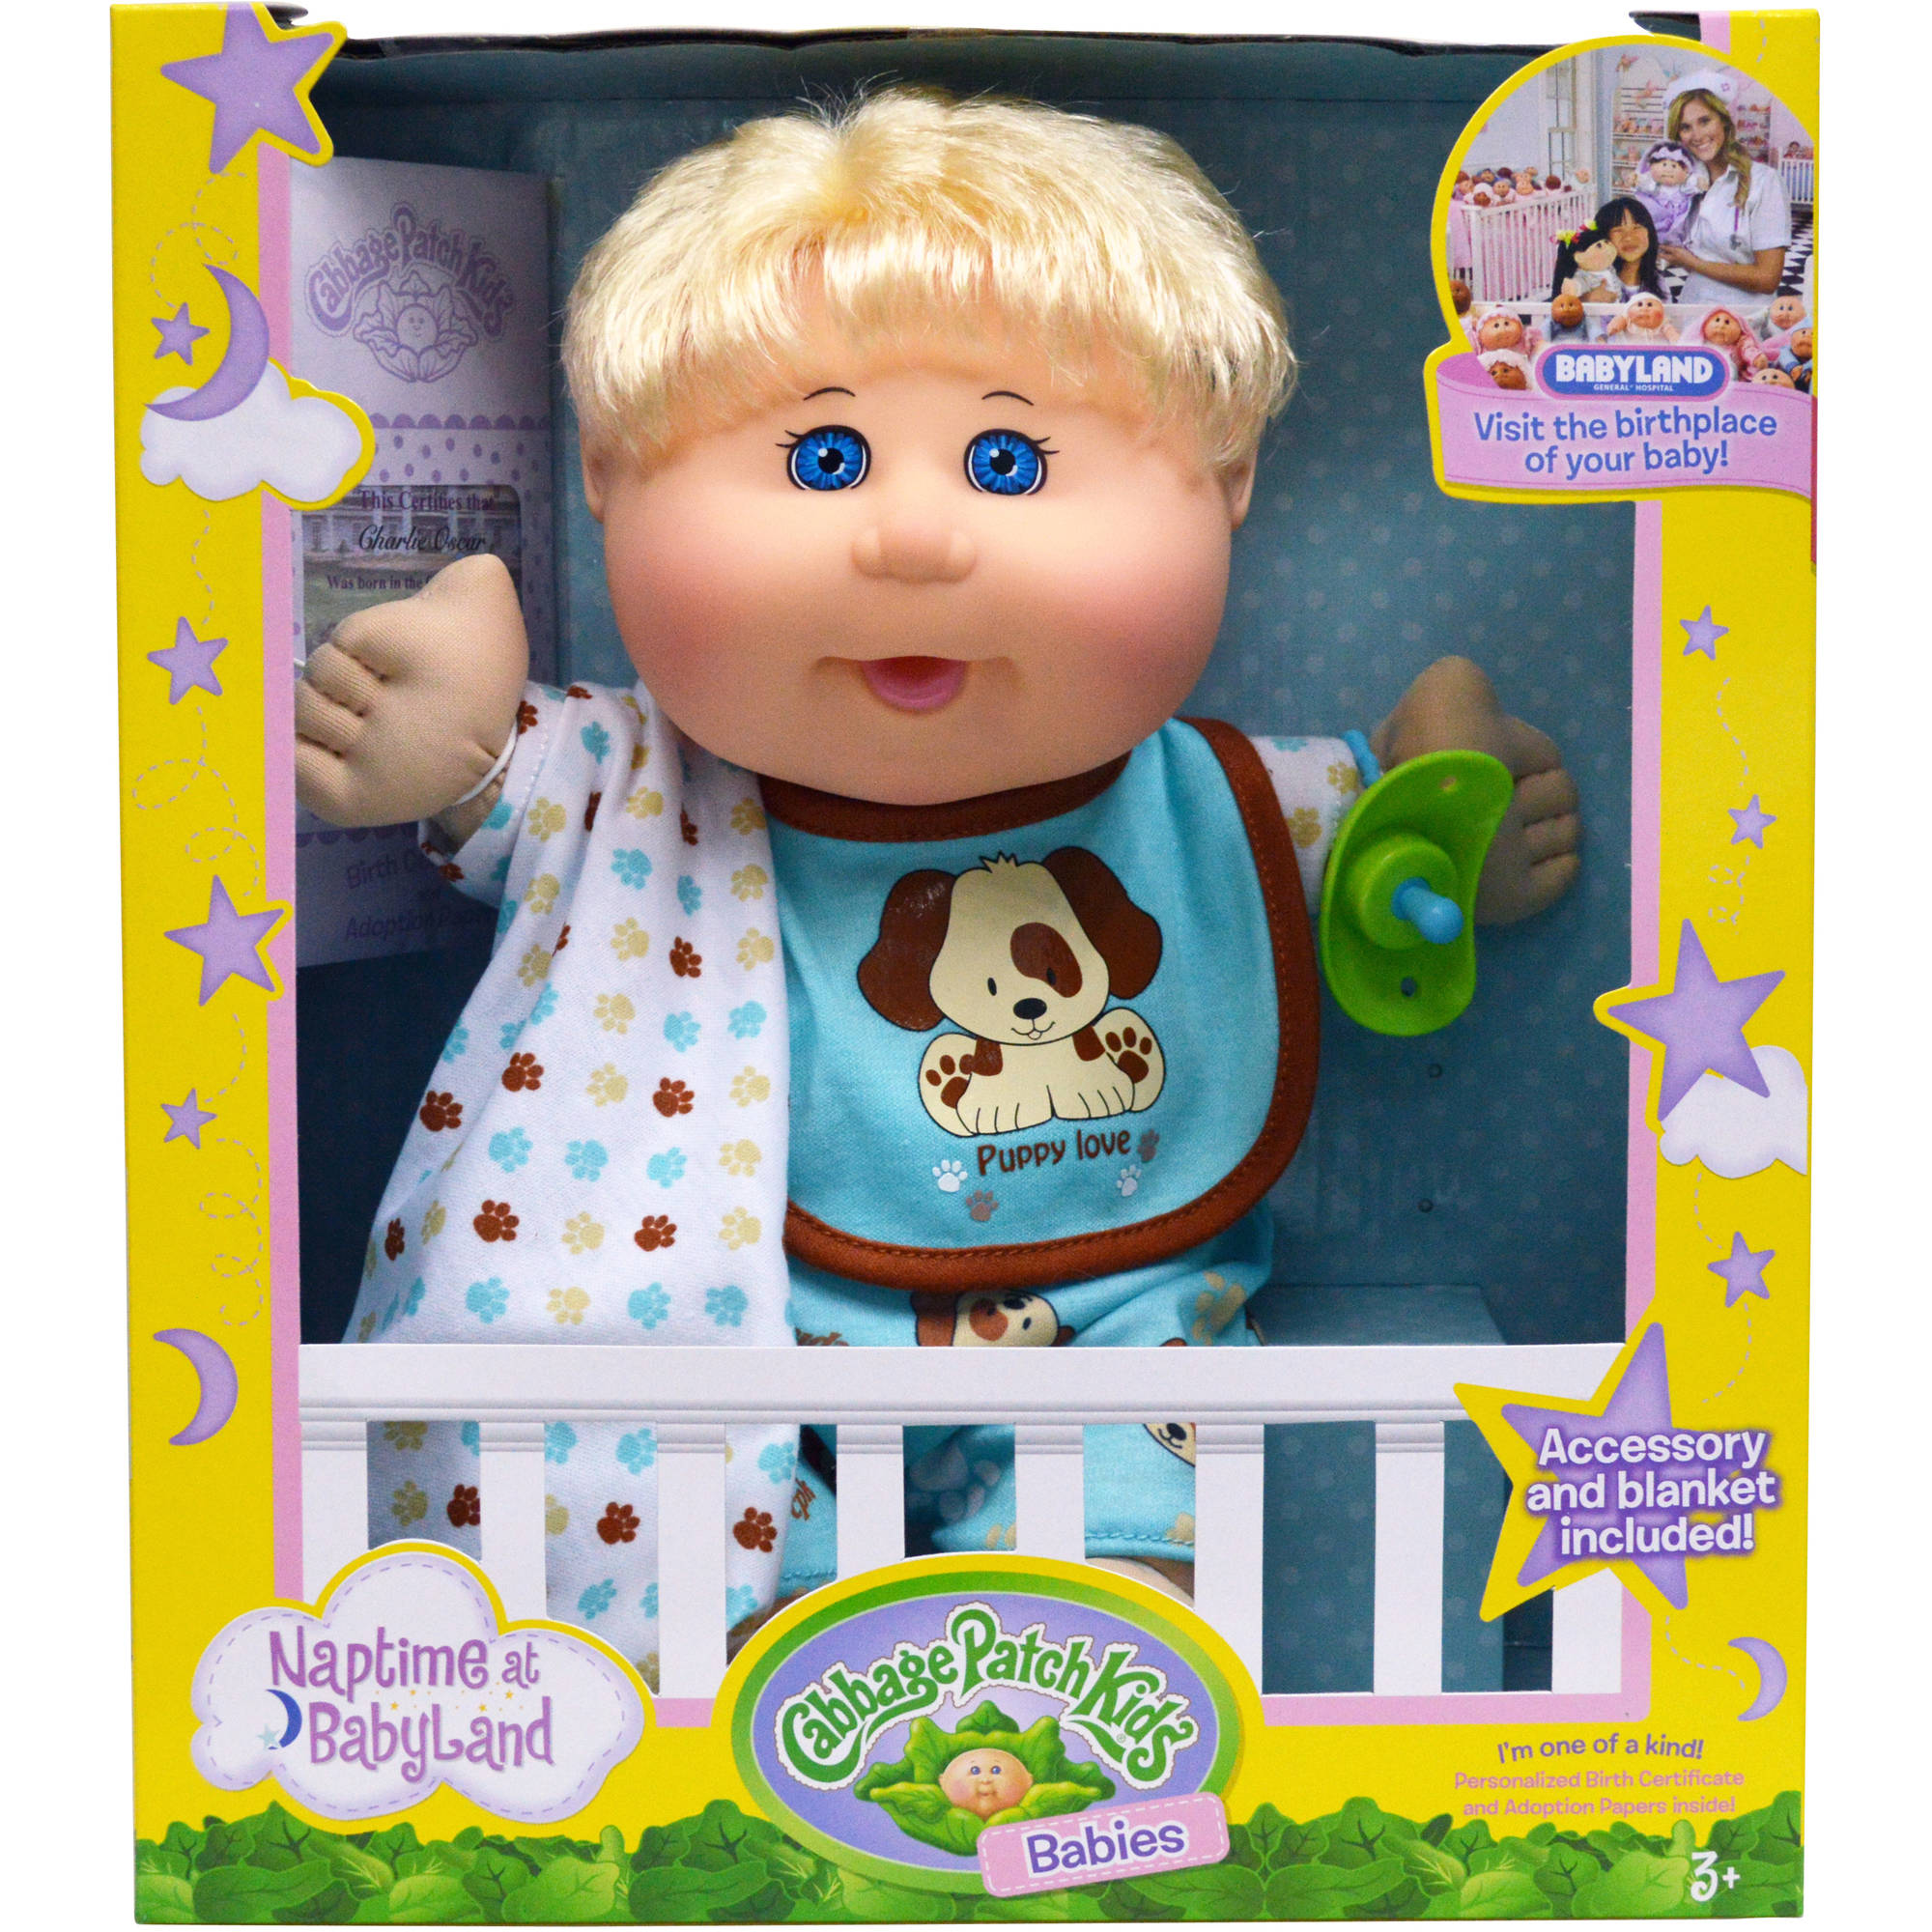 Cabbage Patch Kids Naptime Babies Doll, Blonde Hair/Blue Eye Boy